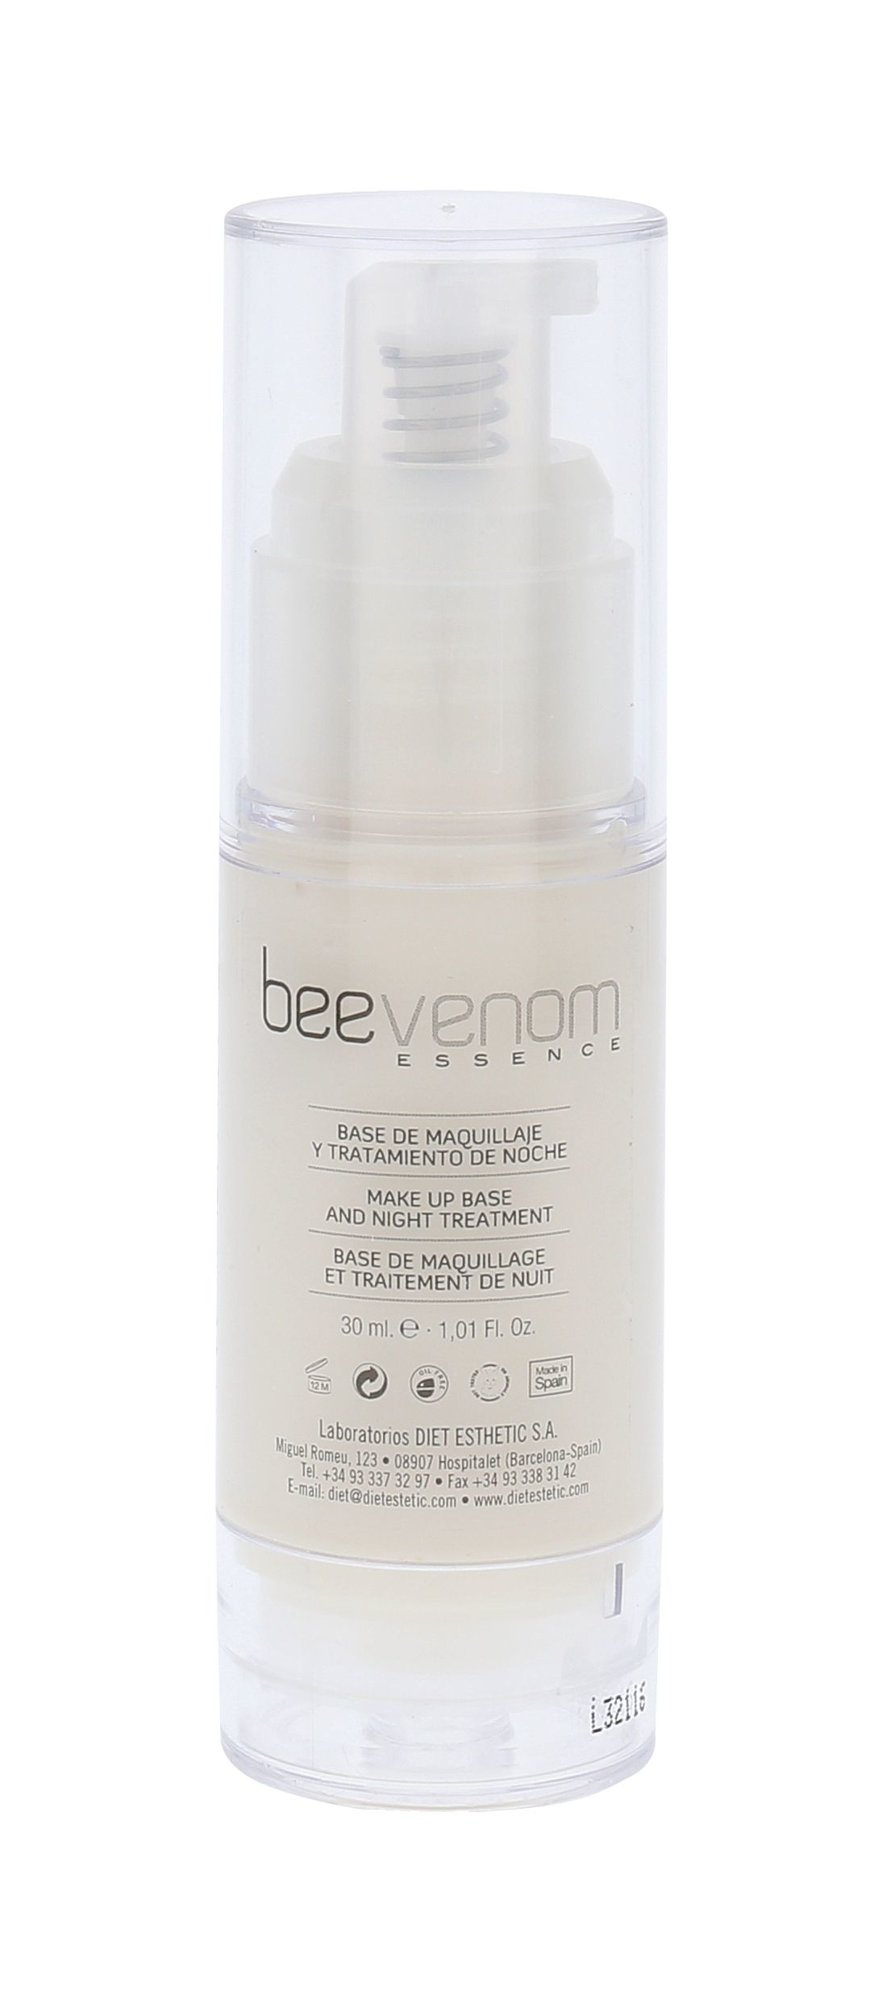 Diet Esthetic Bee Venom Essence Cosmetic 30ml